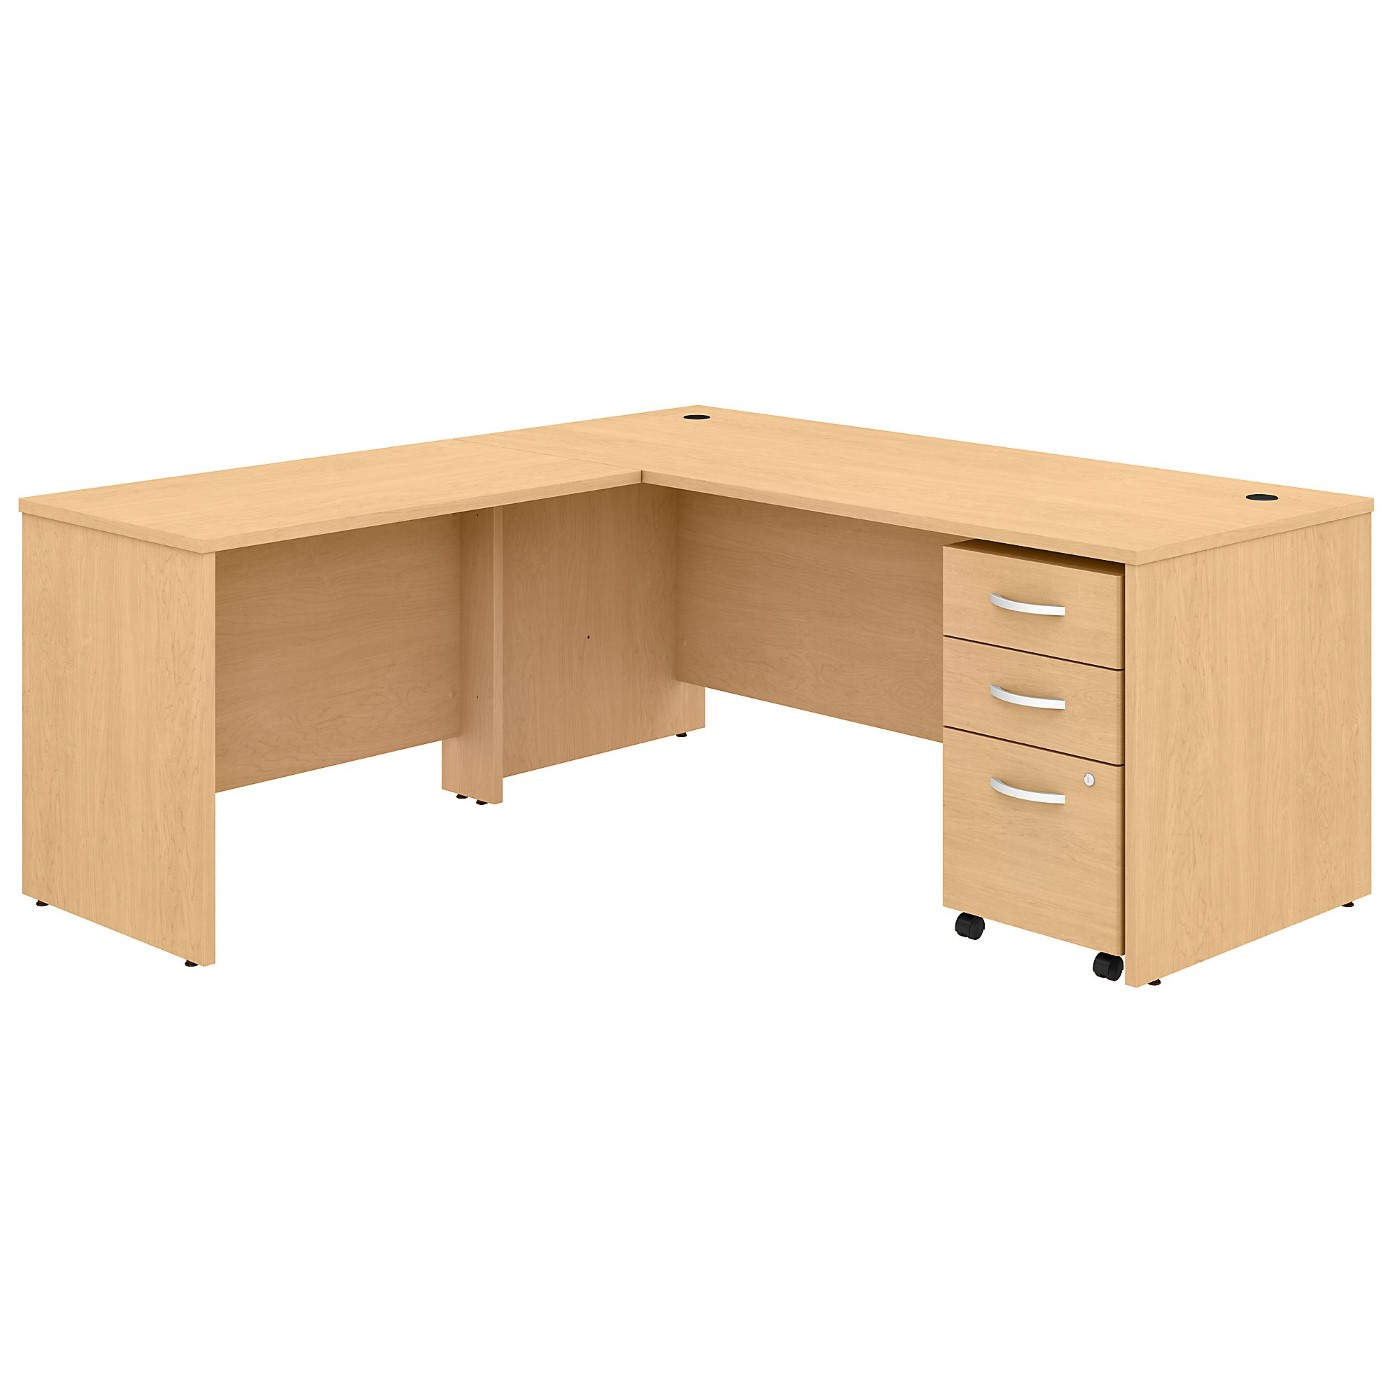 BUSH BUSINESS FURNITURE STUDIO C 72W X 30D L SHAPED DESK WITH MOBILE FILE CABINET AND 42W RETURN. FREE SHIPPING SALE DEDUCT 10% MORE ENTER '10percent' IN COUPON CODE BOX WHILE CHECKING OUT.